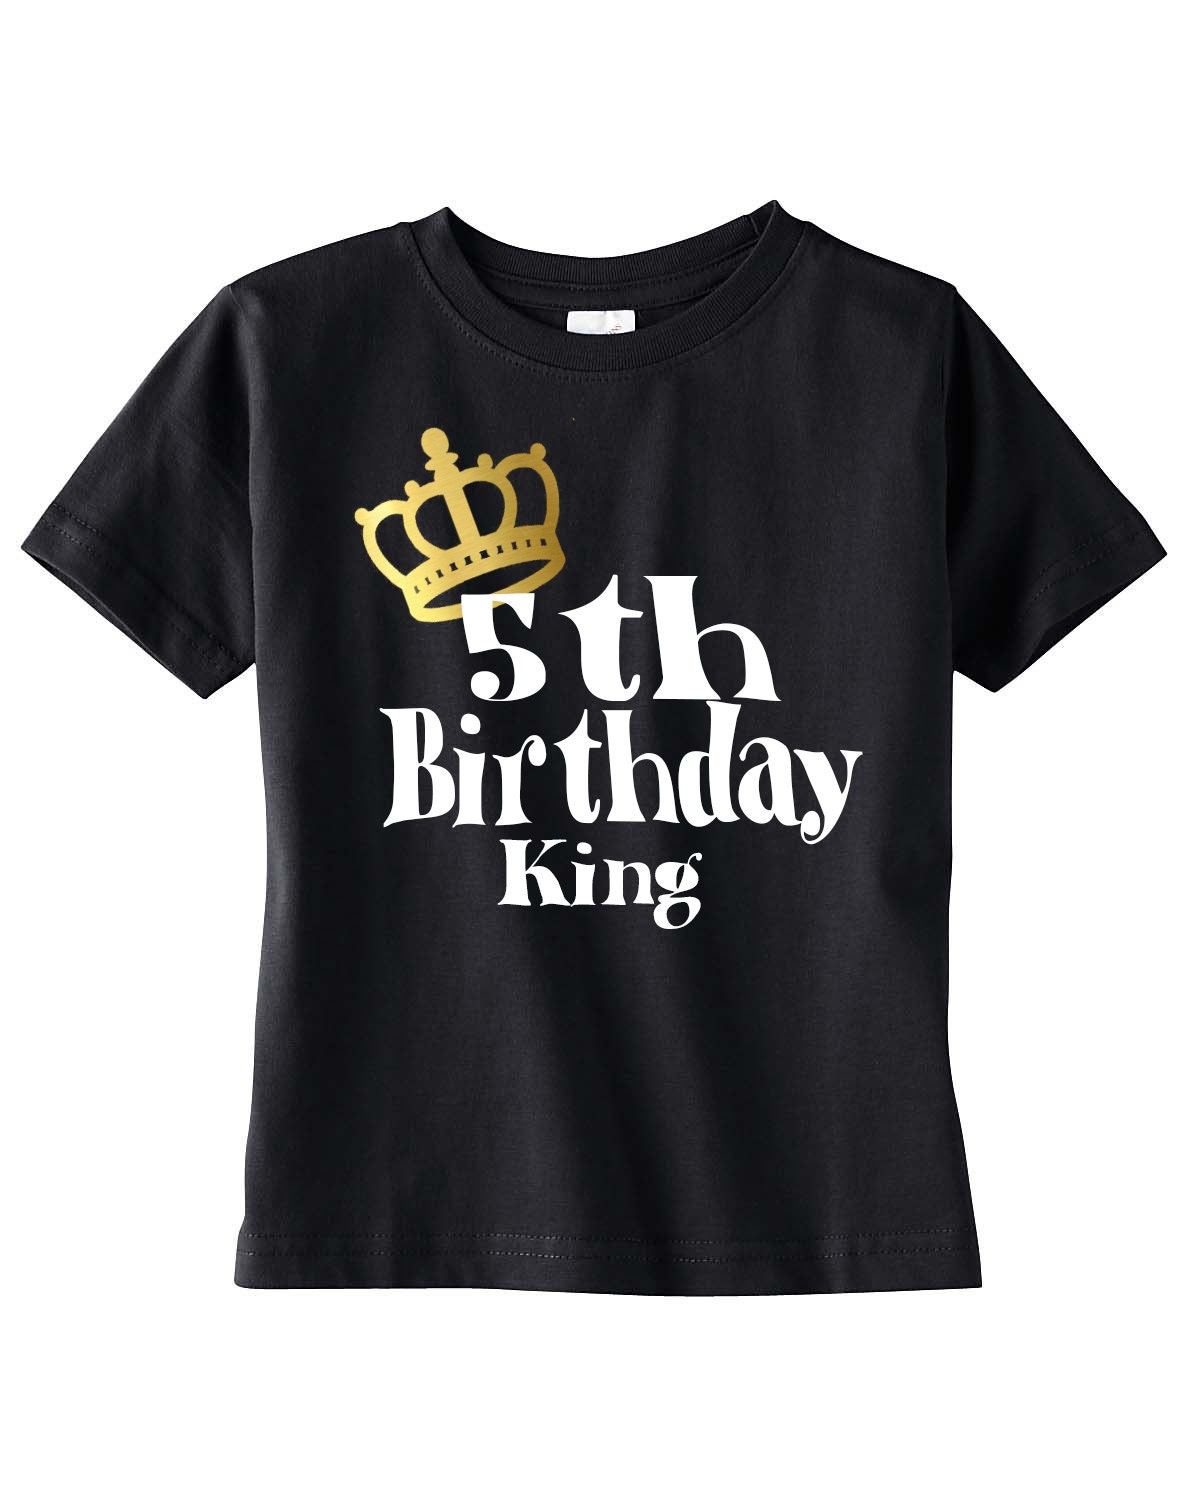 Boys 5th Birthday Shirt Boy King